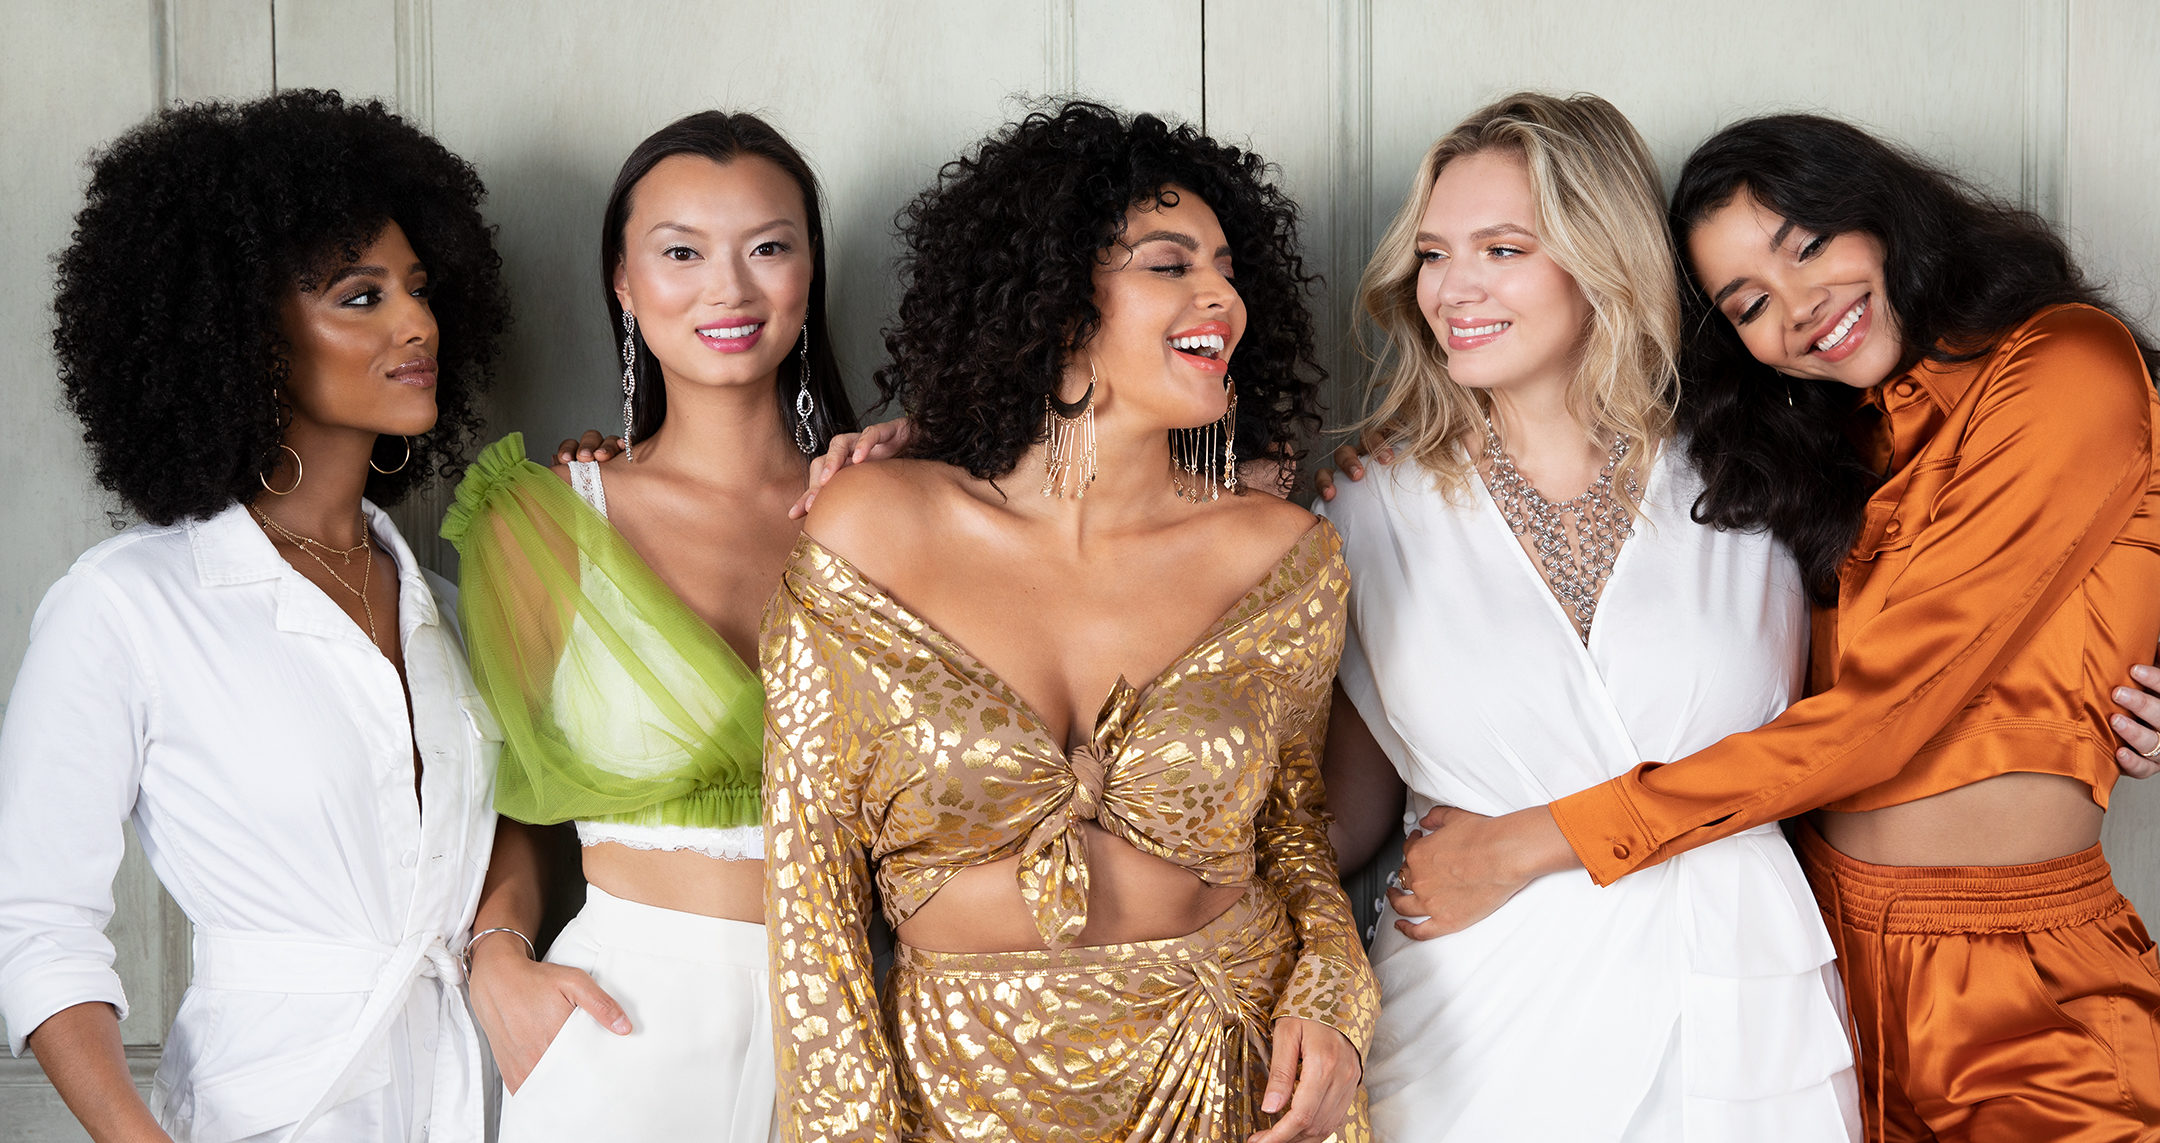 5 woman in choosy dresses smiling